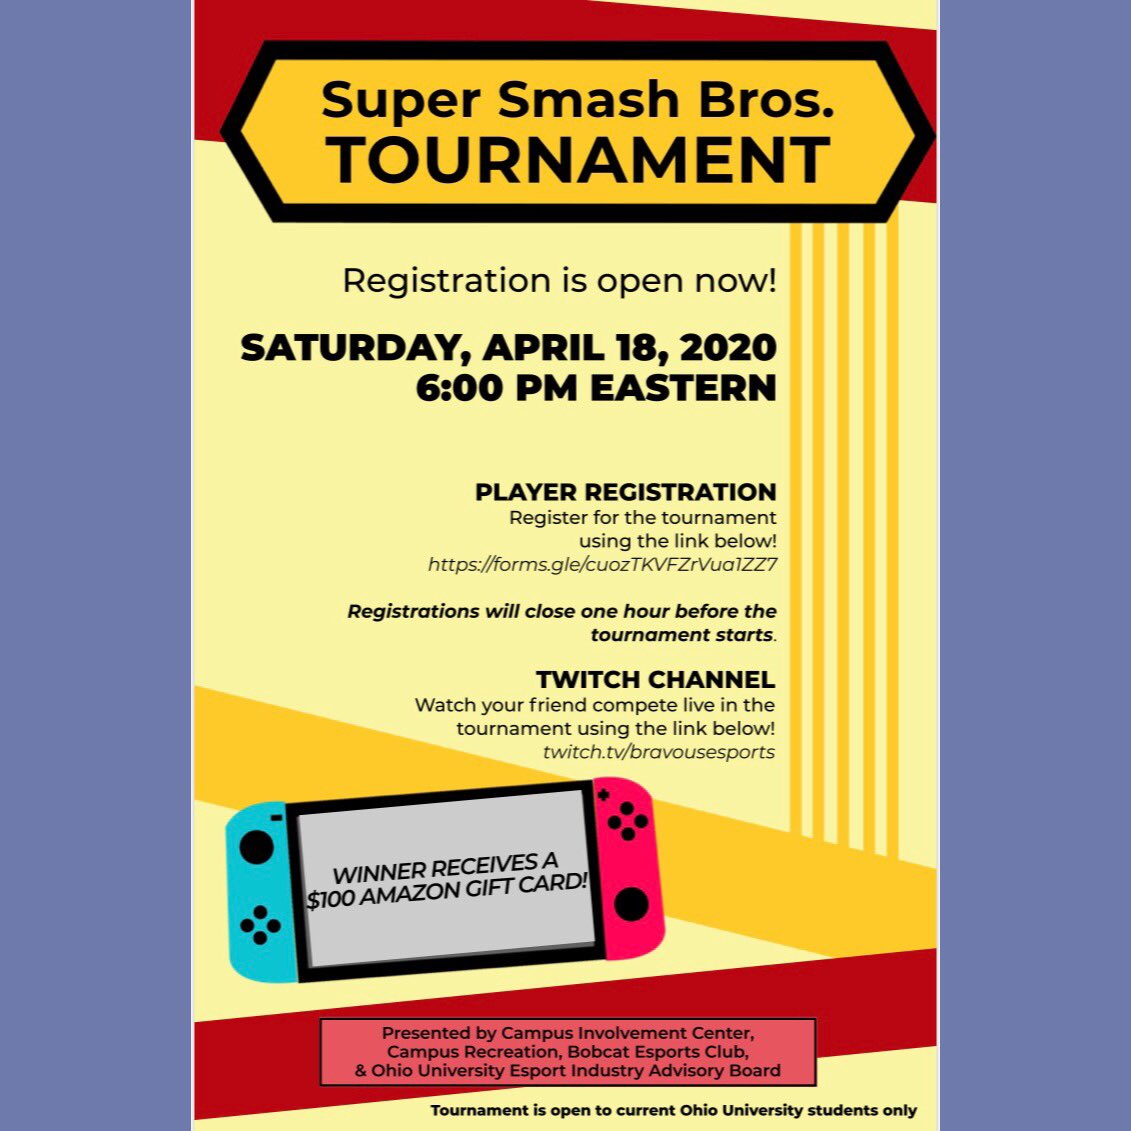 Today is the day! Win a $100 Amazon gift card! You can still sign up until 5pm (an hour before the tournament starts) at this link: https://t.co/SYfHsWLVy1  Want to watch your friends play, too? https://t.co/4tmkvDVB68 to watch! https://t.co/59GH98EG9E